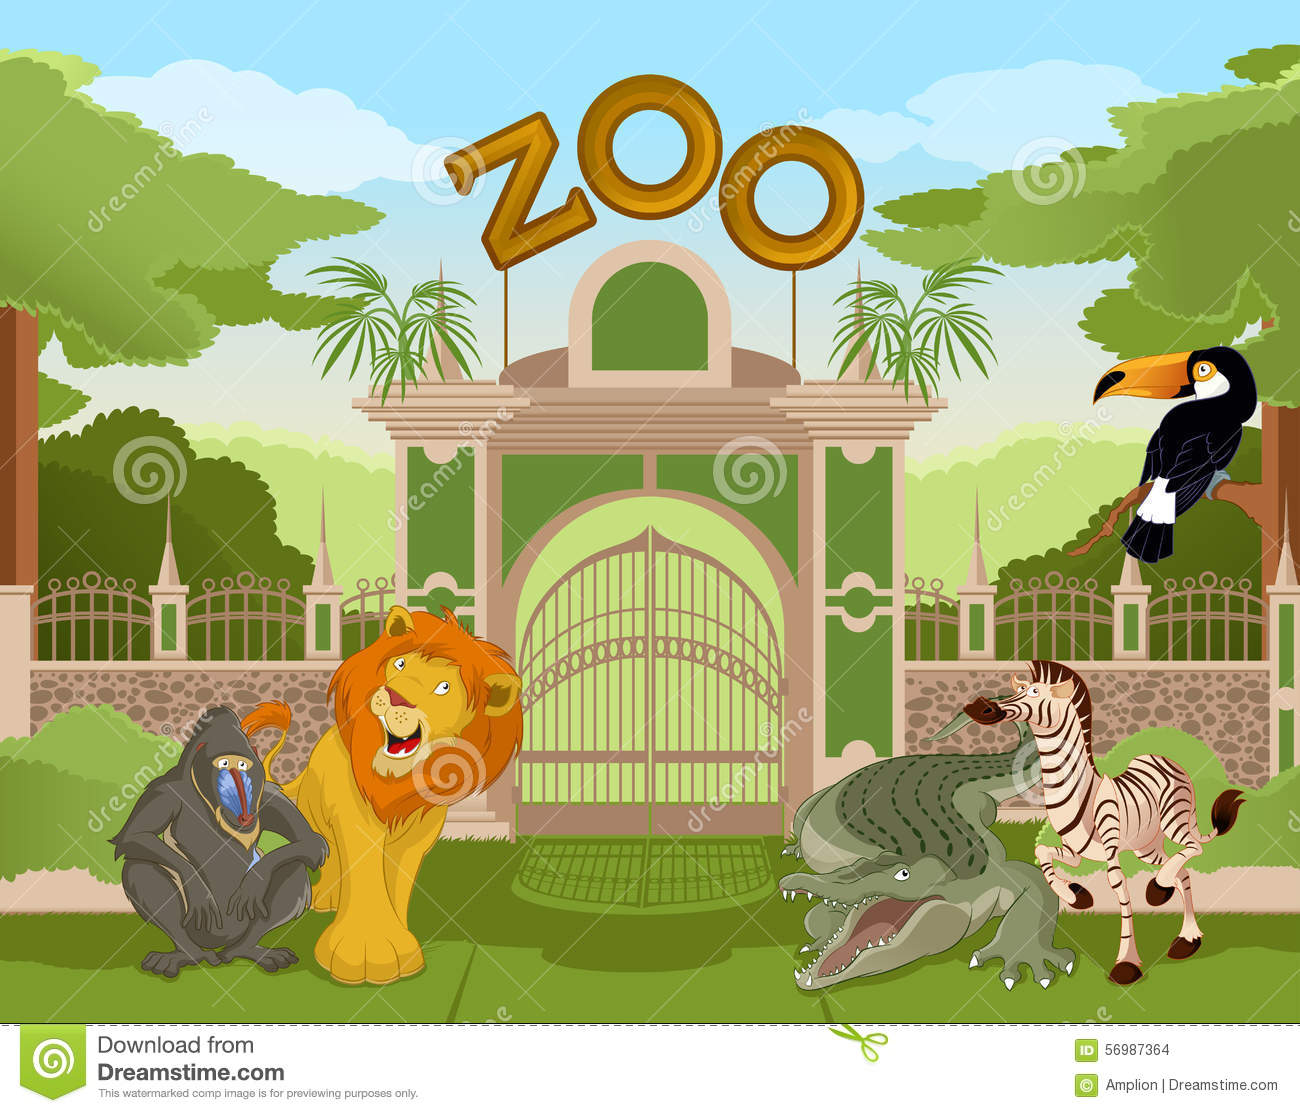 Garden gate plans - Zoo Gate With African Animals 2 Stock Vector Image 56987364